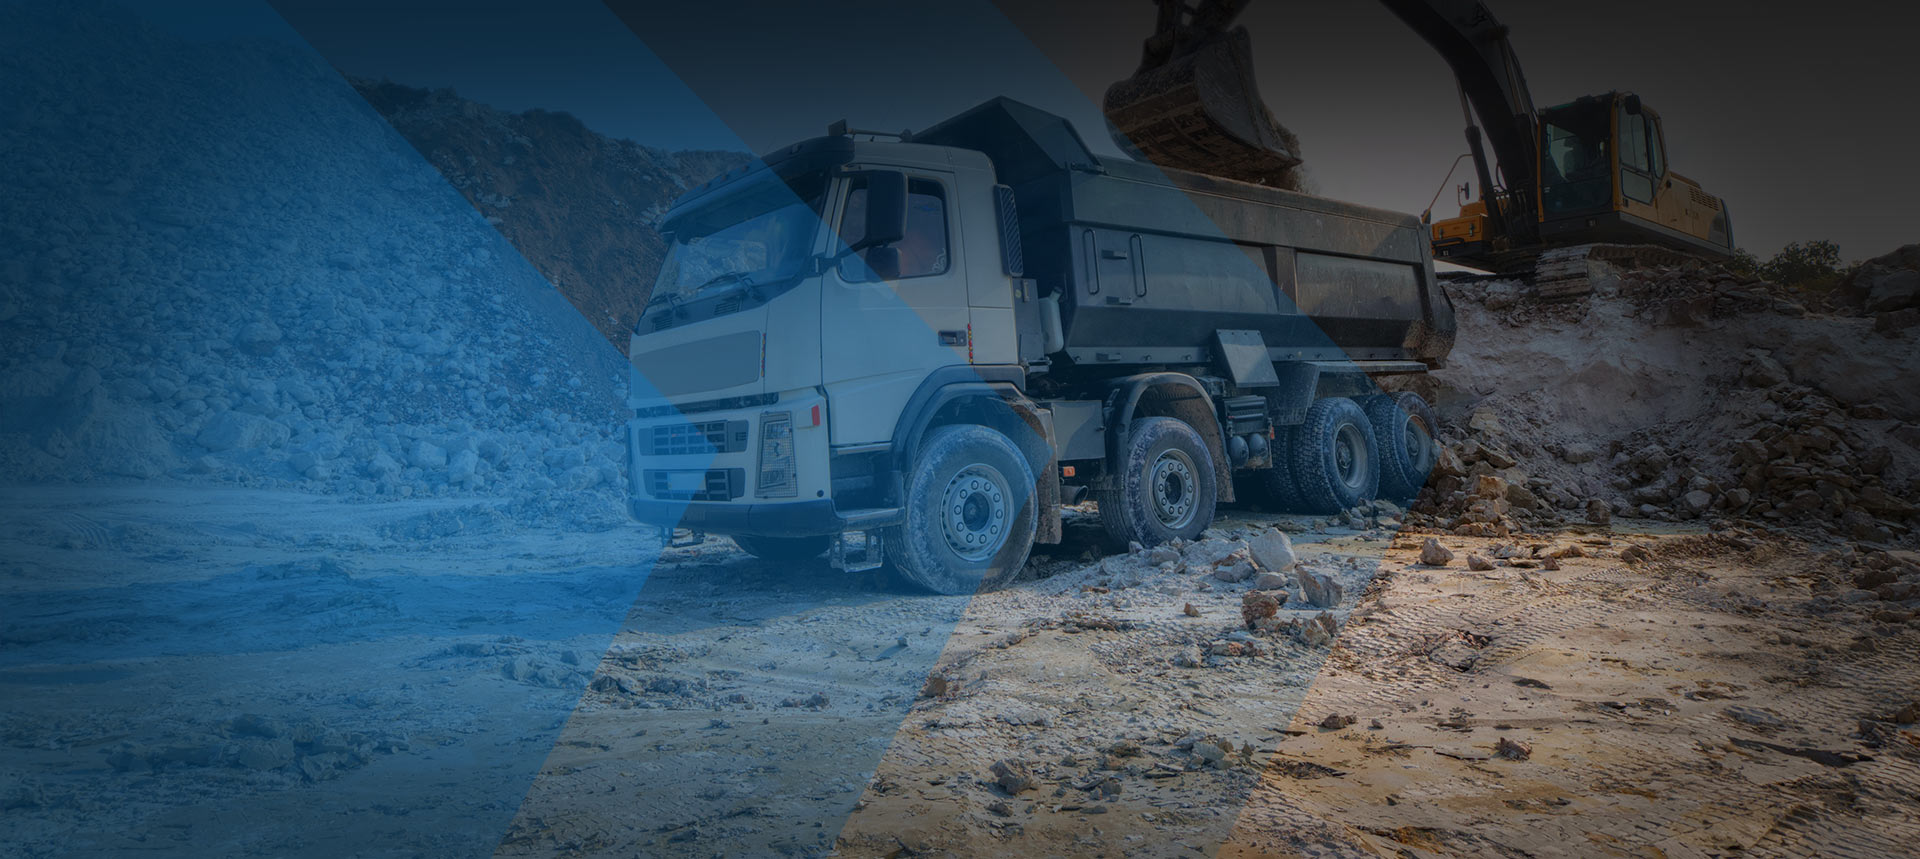 Gravel Sizes and Applications - Same-Day Aggregates